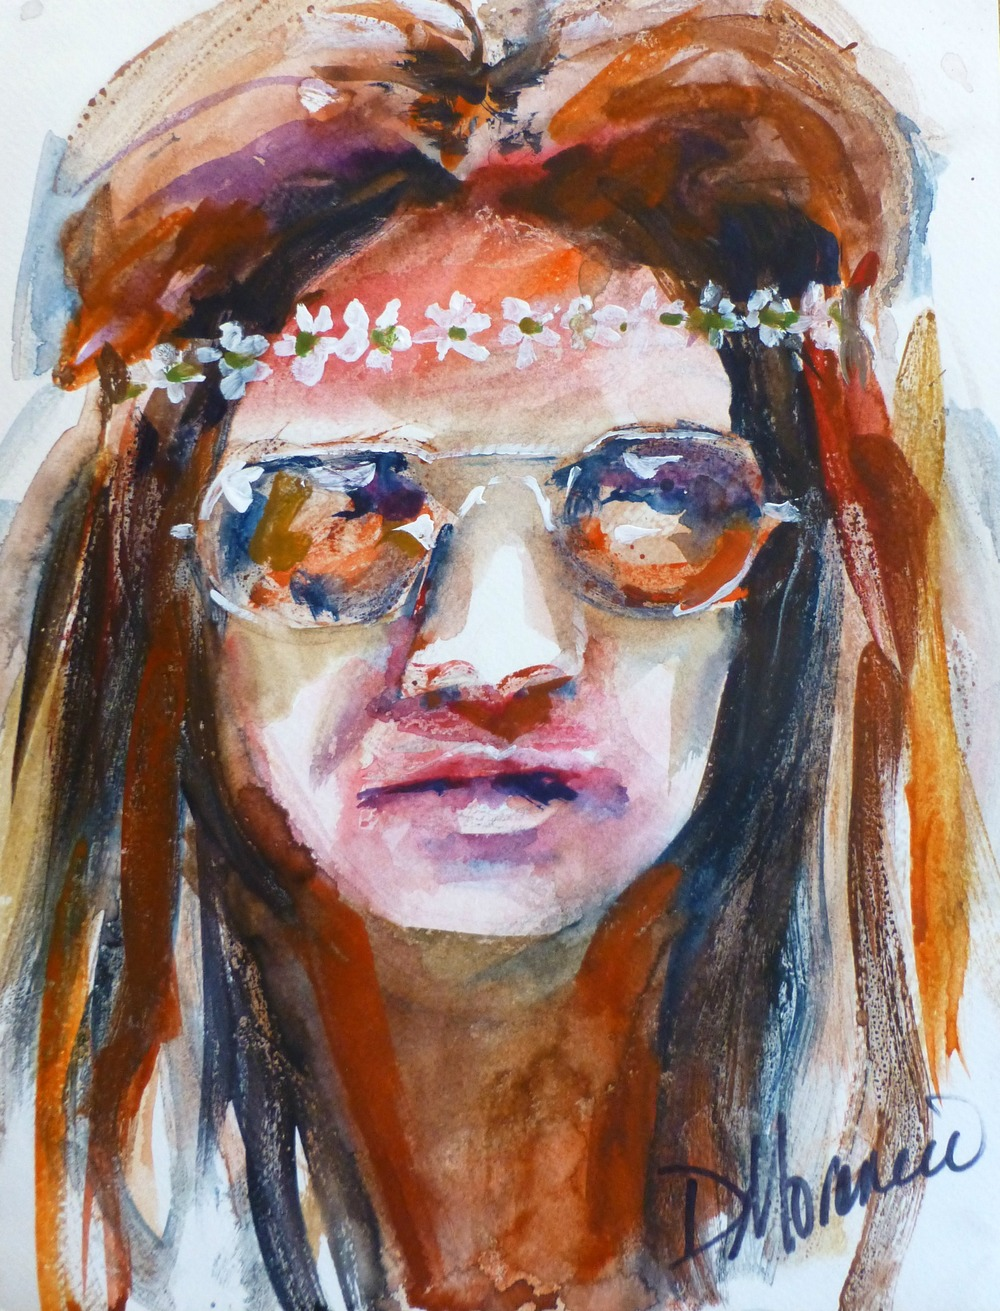 nwm-Sketch - Hippie Girl.jpg